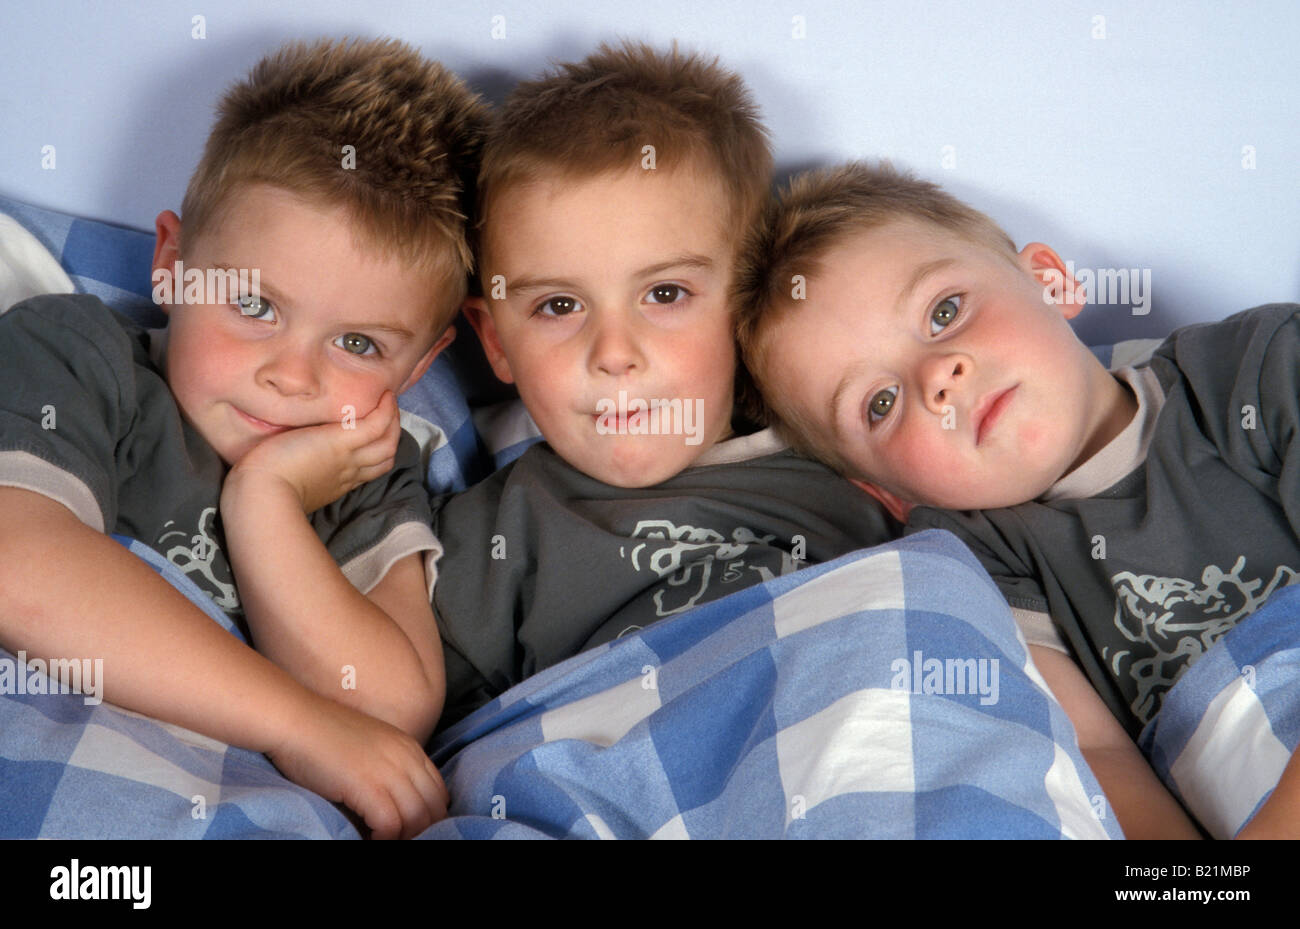 triplets boys stock photos triplets boys stock images alamy